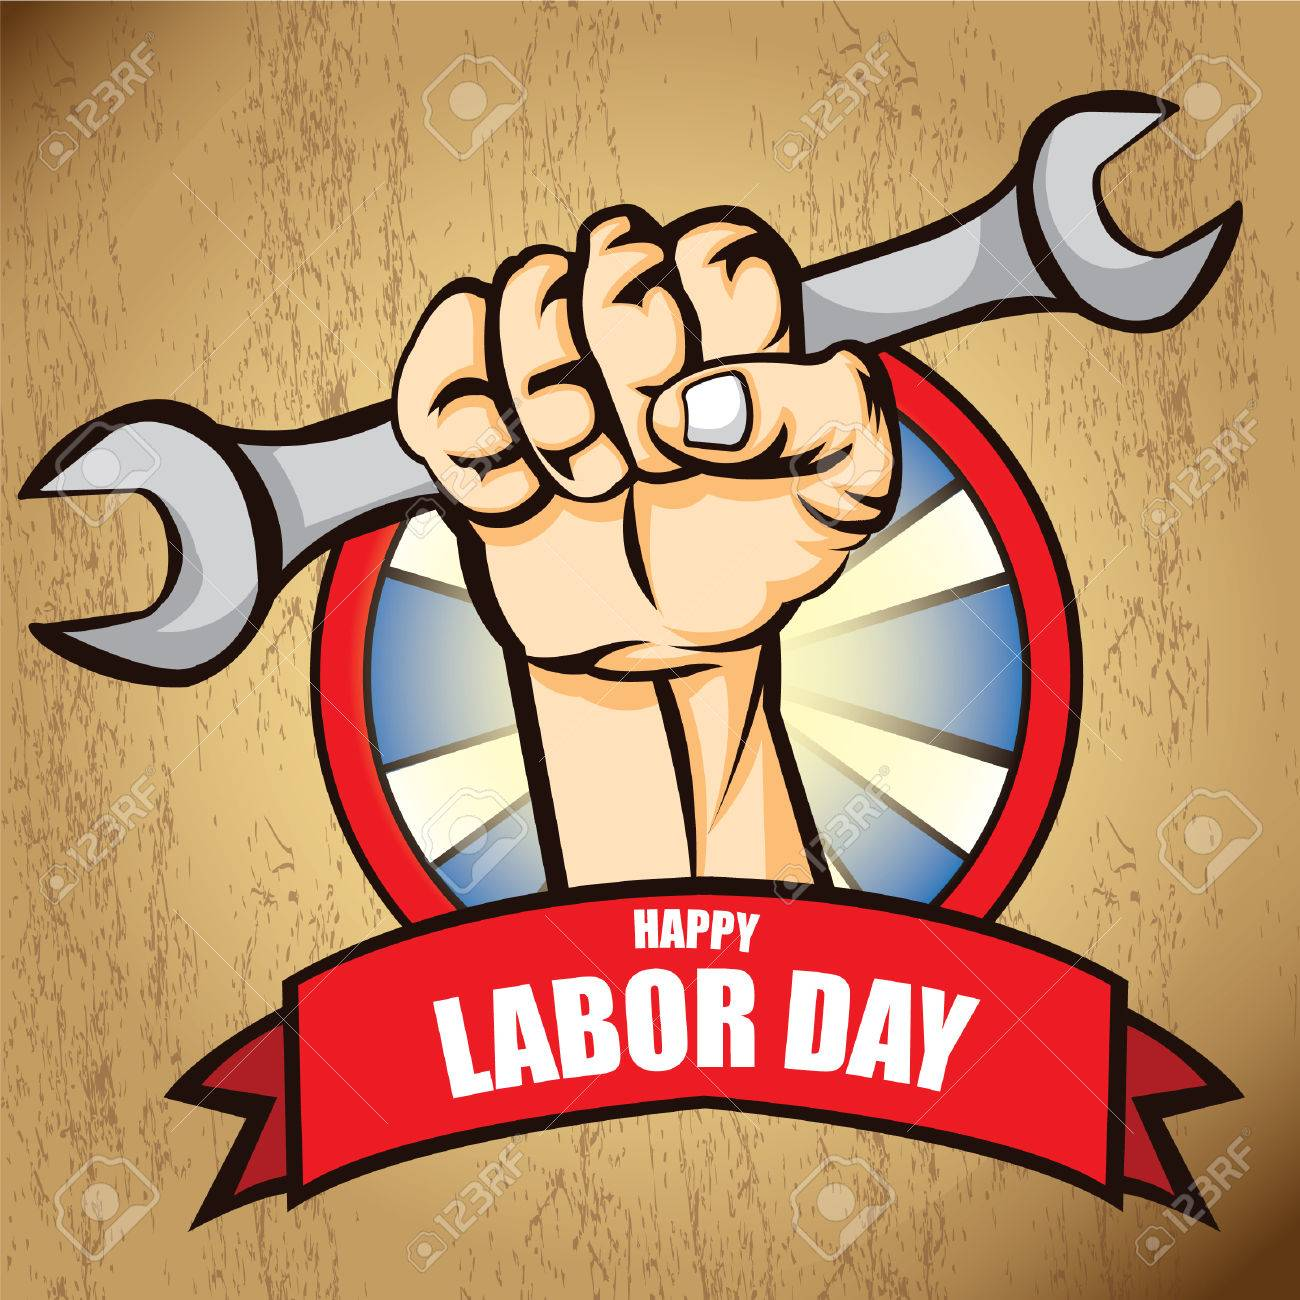 Happy Labor Day Poster Royalty Free Cliparts, Vectors, And Stock ...